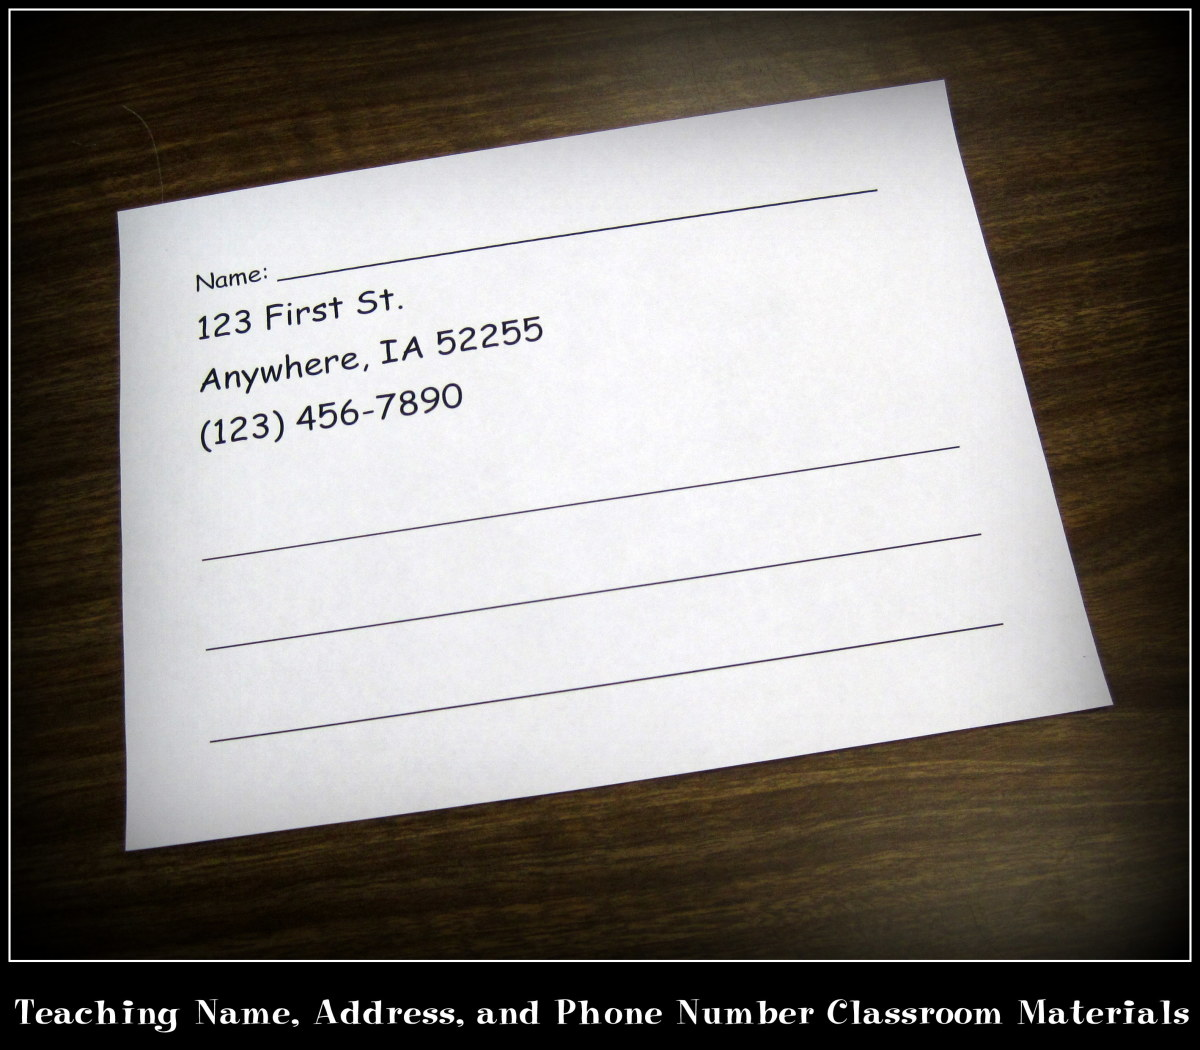 Teaching Name, Address, and Phone Number Classroom Materials